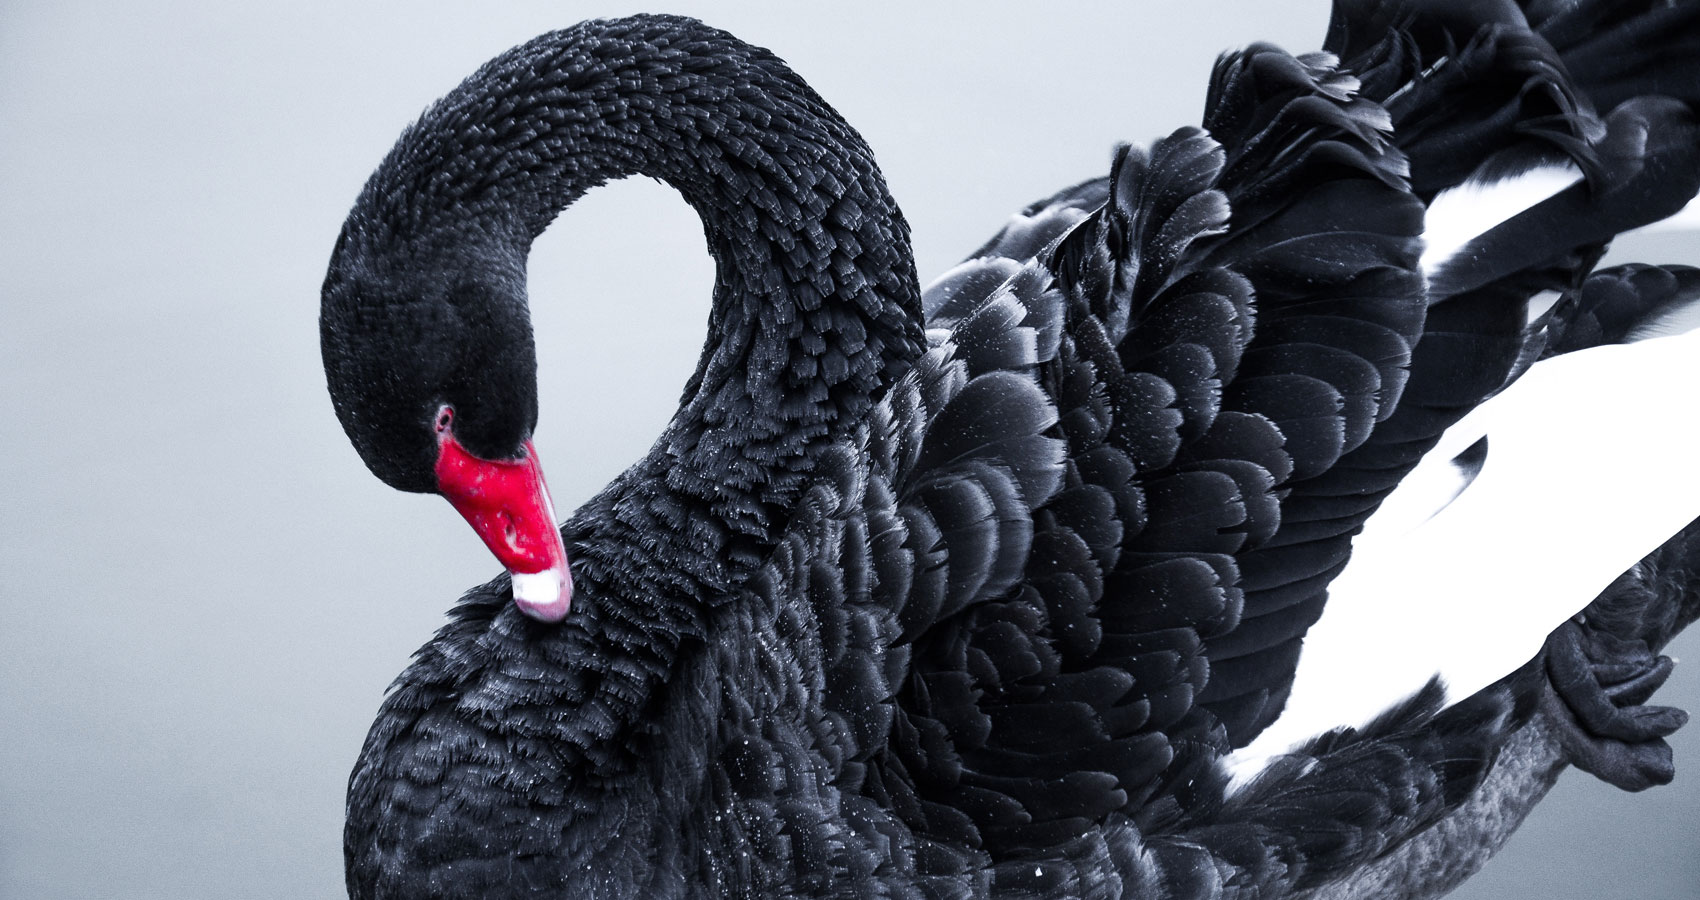 Black Swans, poetry written by Elizabeth Barton at Spillwords.com